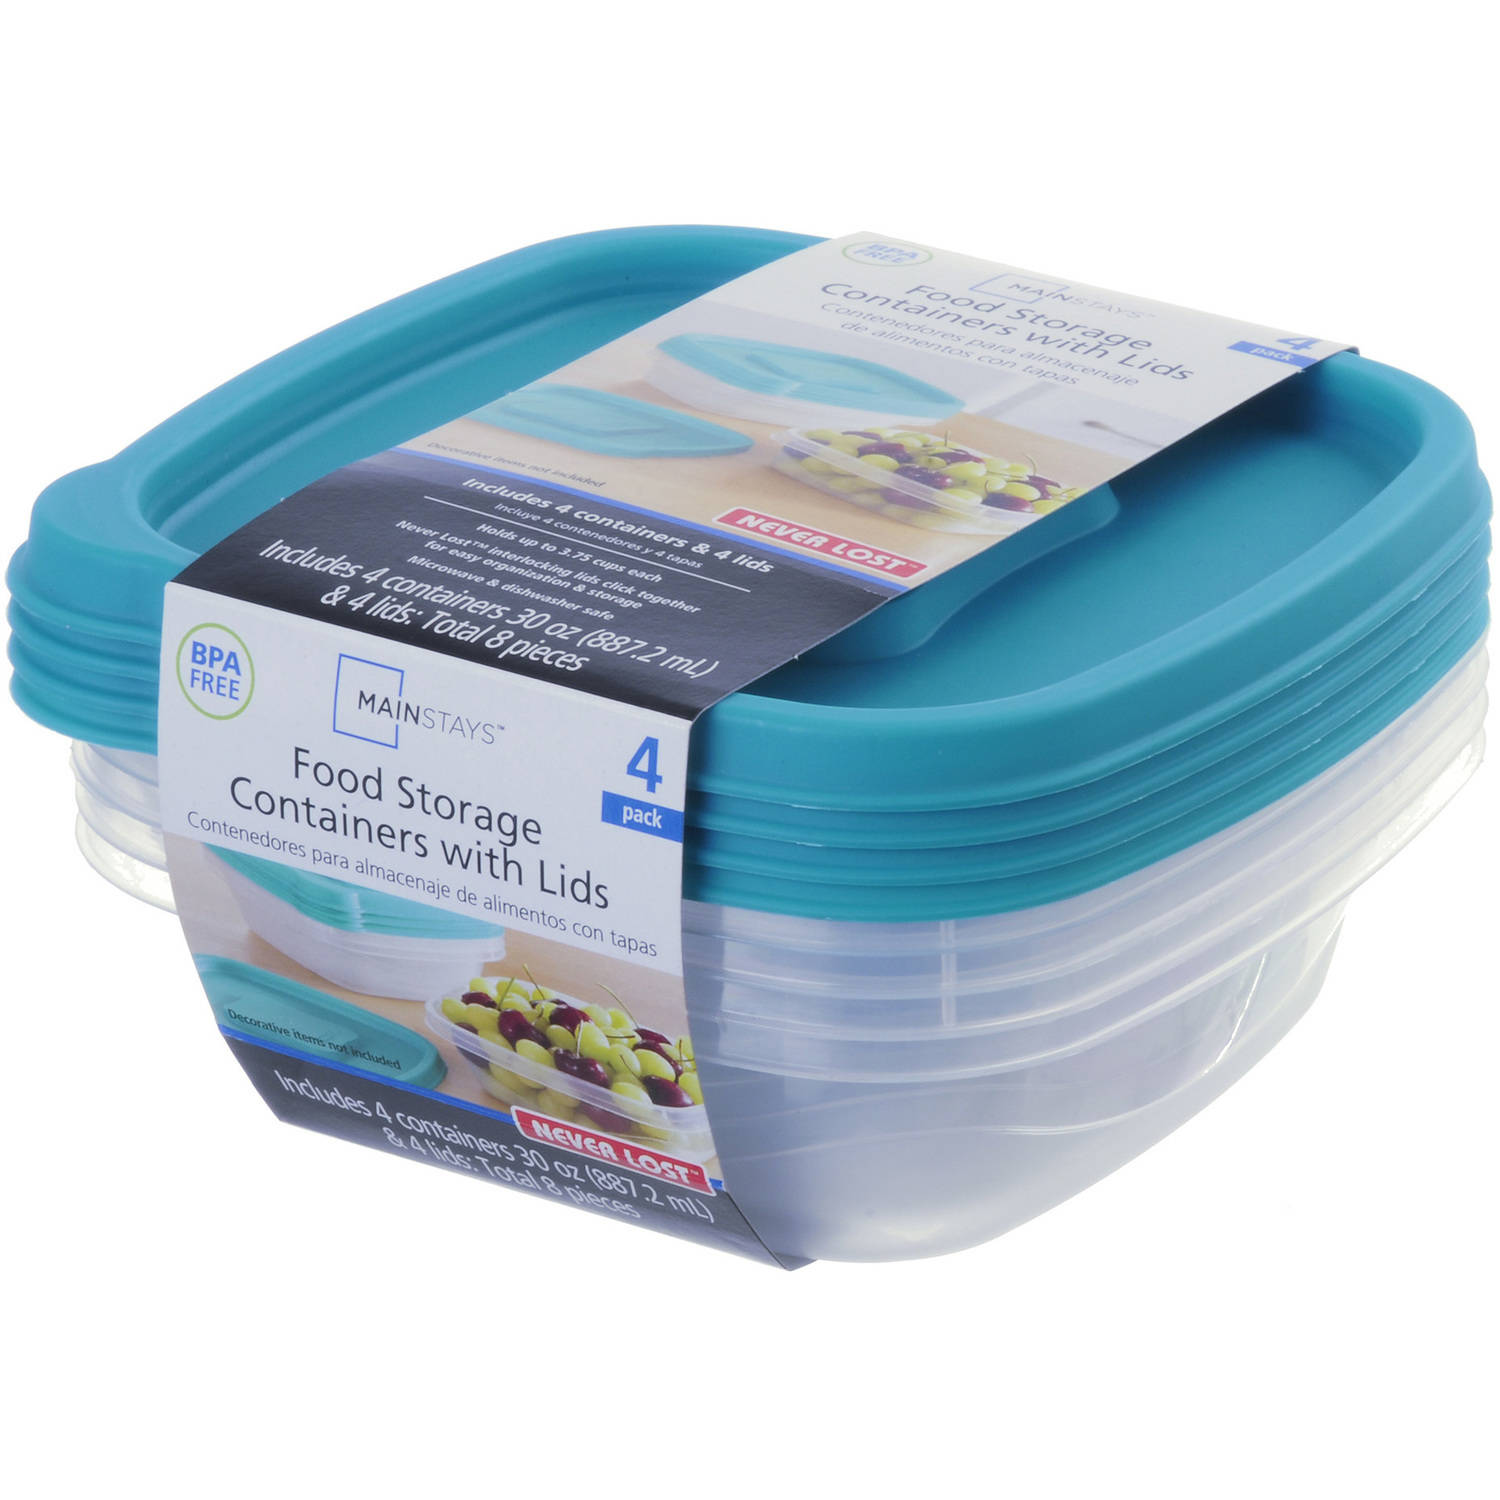 Mainstays Never Lost 30 Oz Food Storage Containers With Lids, 4 Count